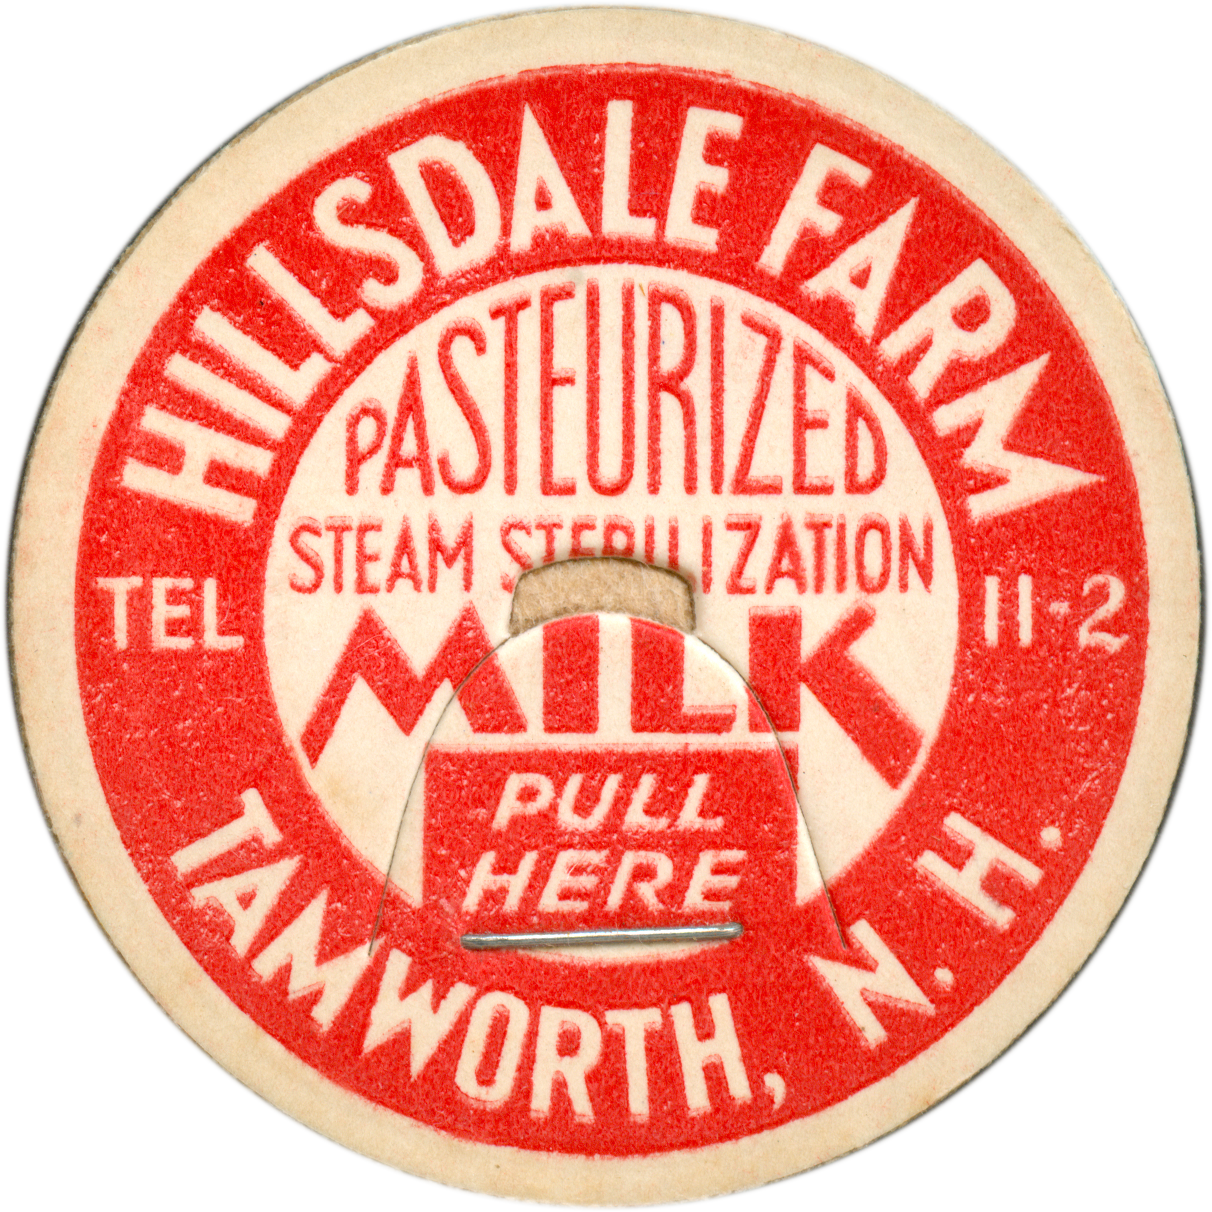 VernacularCircles__0001s_0050_Hillsdale-Dairy-Pasteurized-Steam-Sterilization-Milk.png